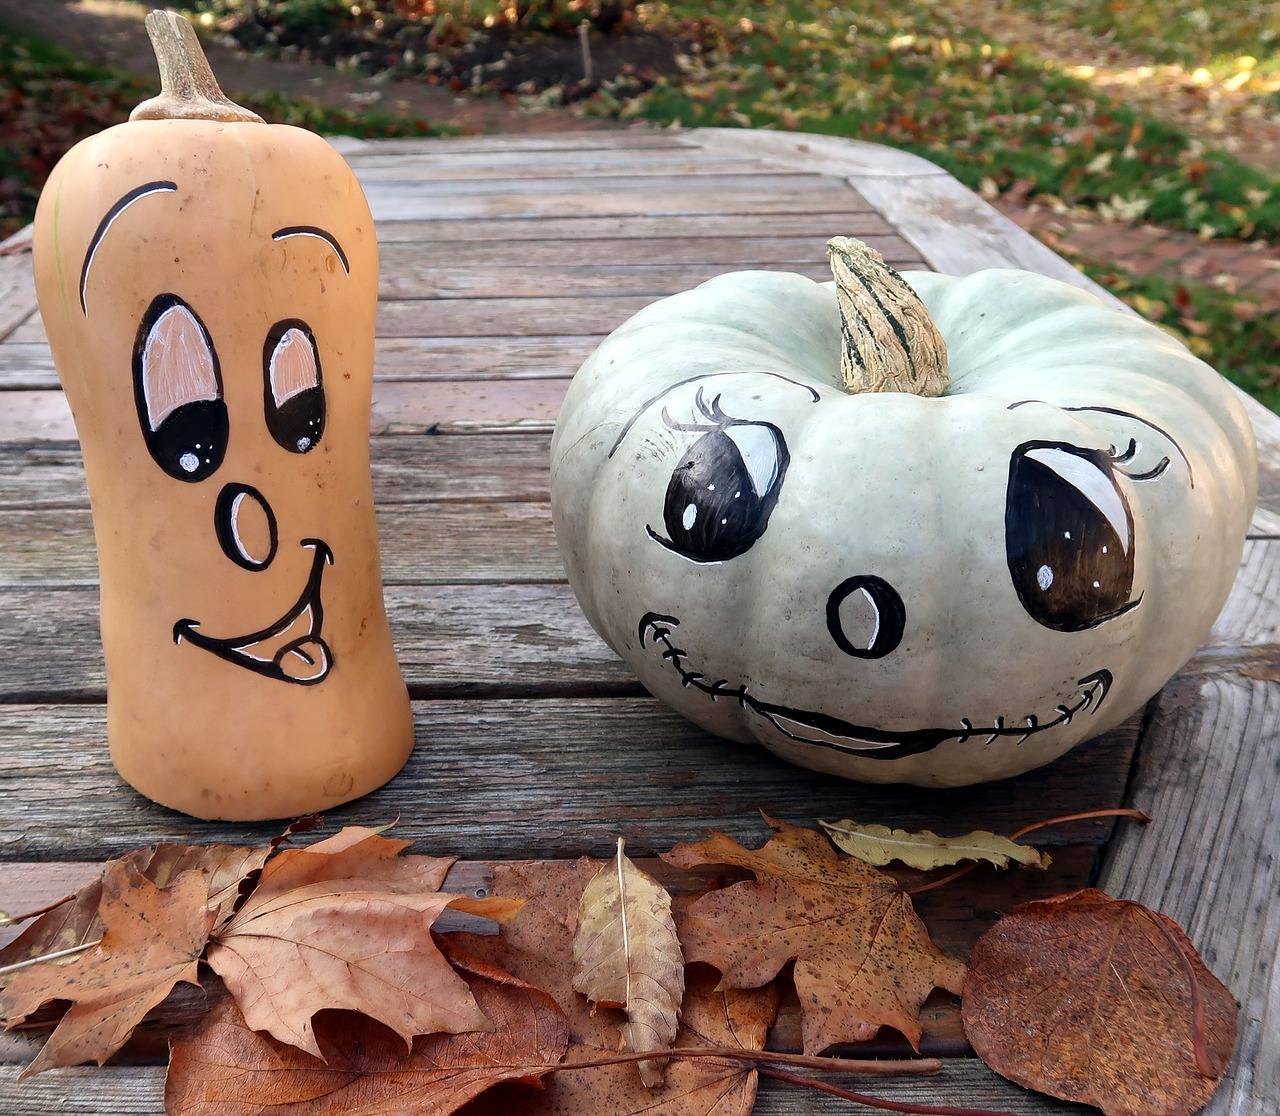 Pumpkins with painted faces.